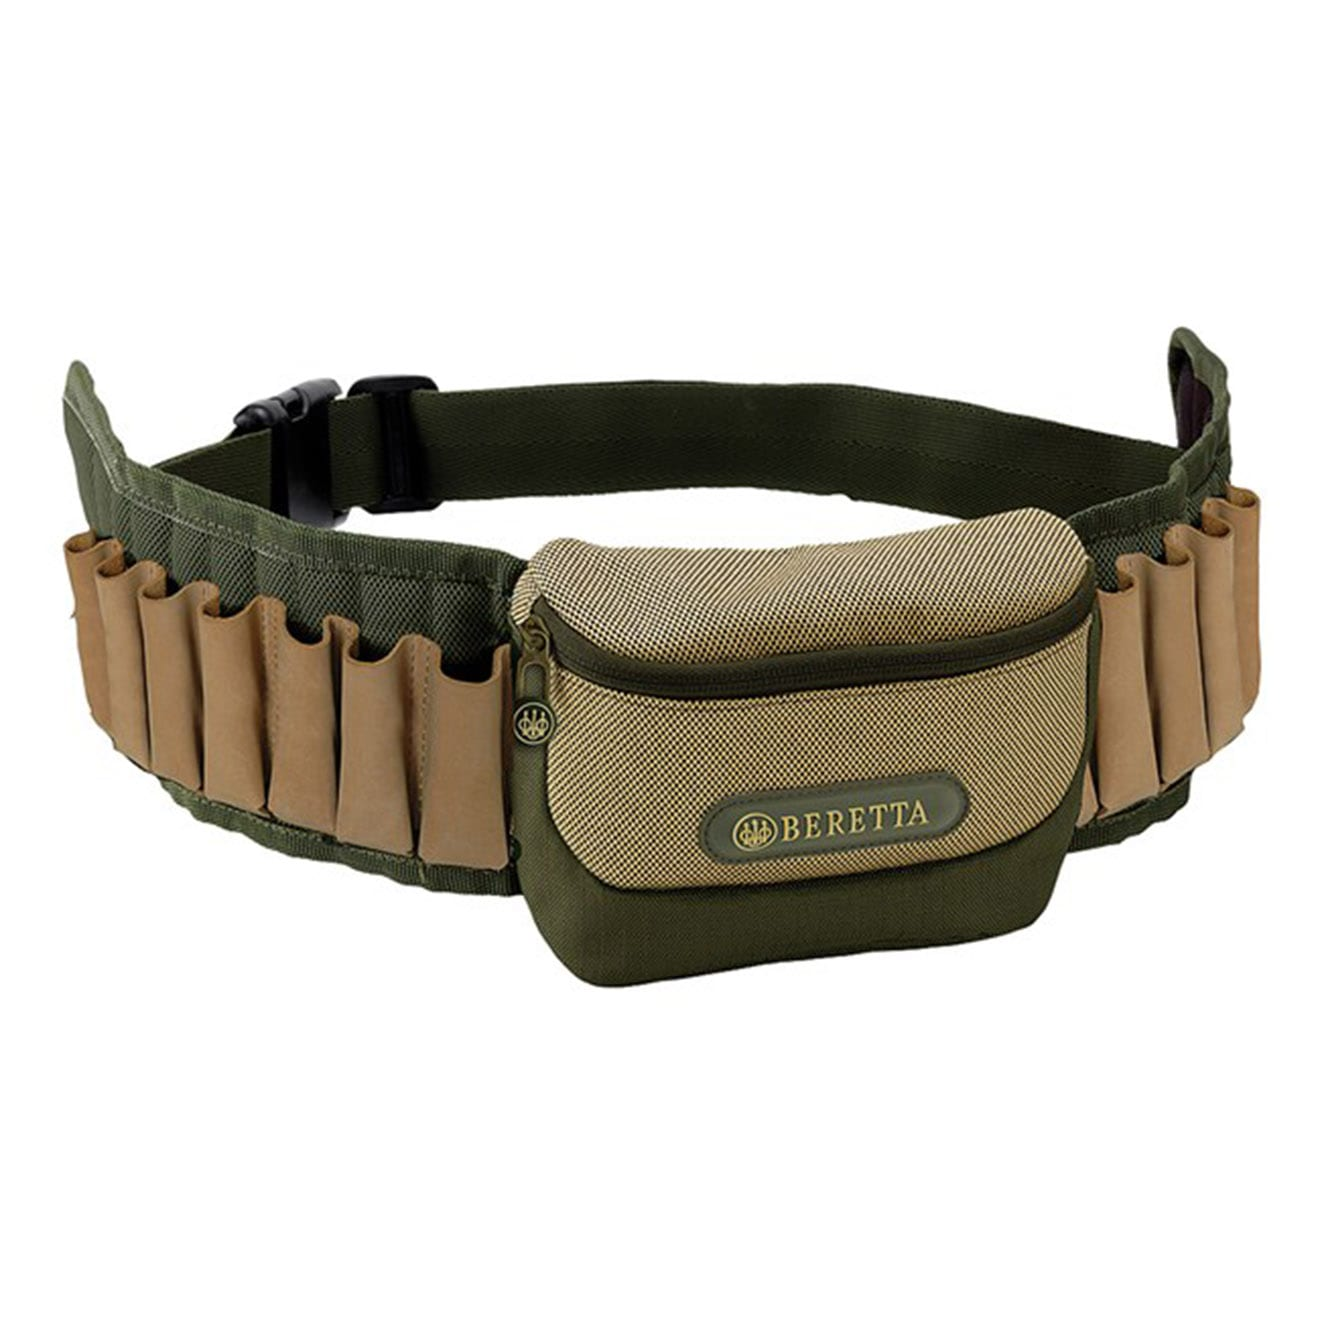 Beretta Retriever Cartridge Belt 20 Loop 12g Rifle Green